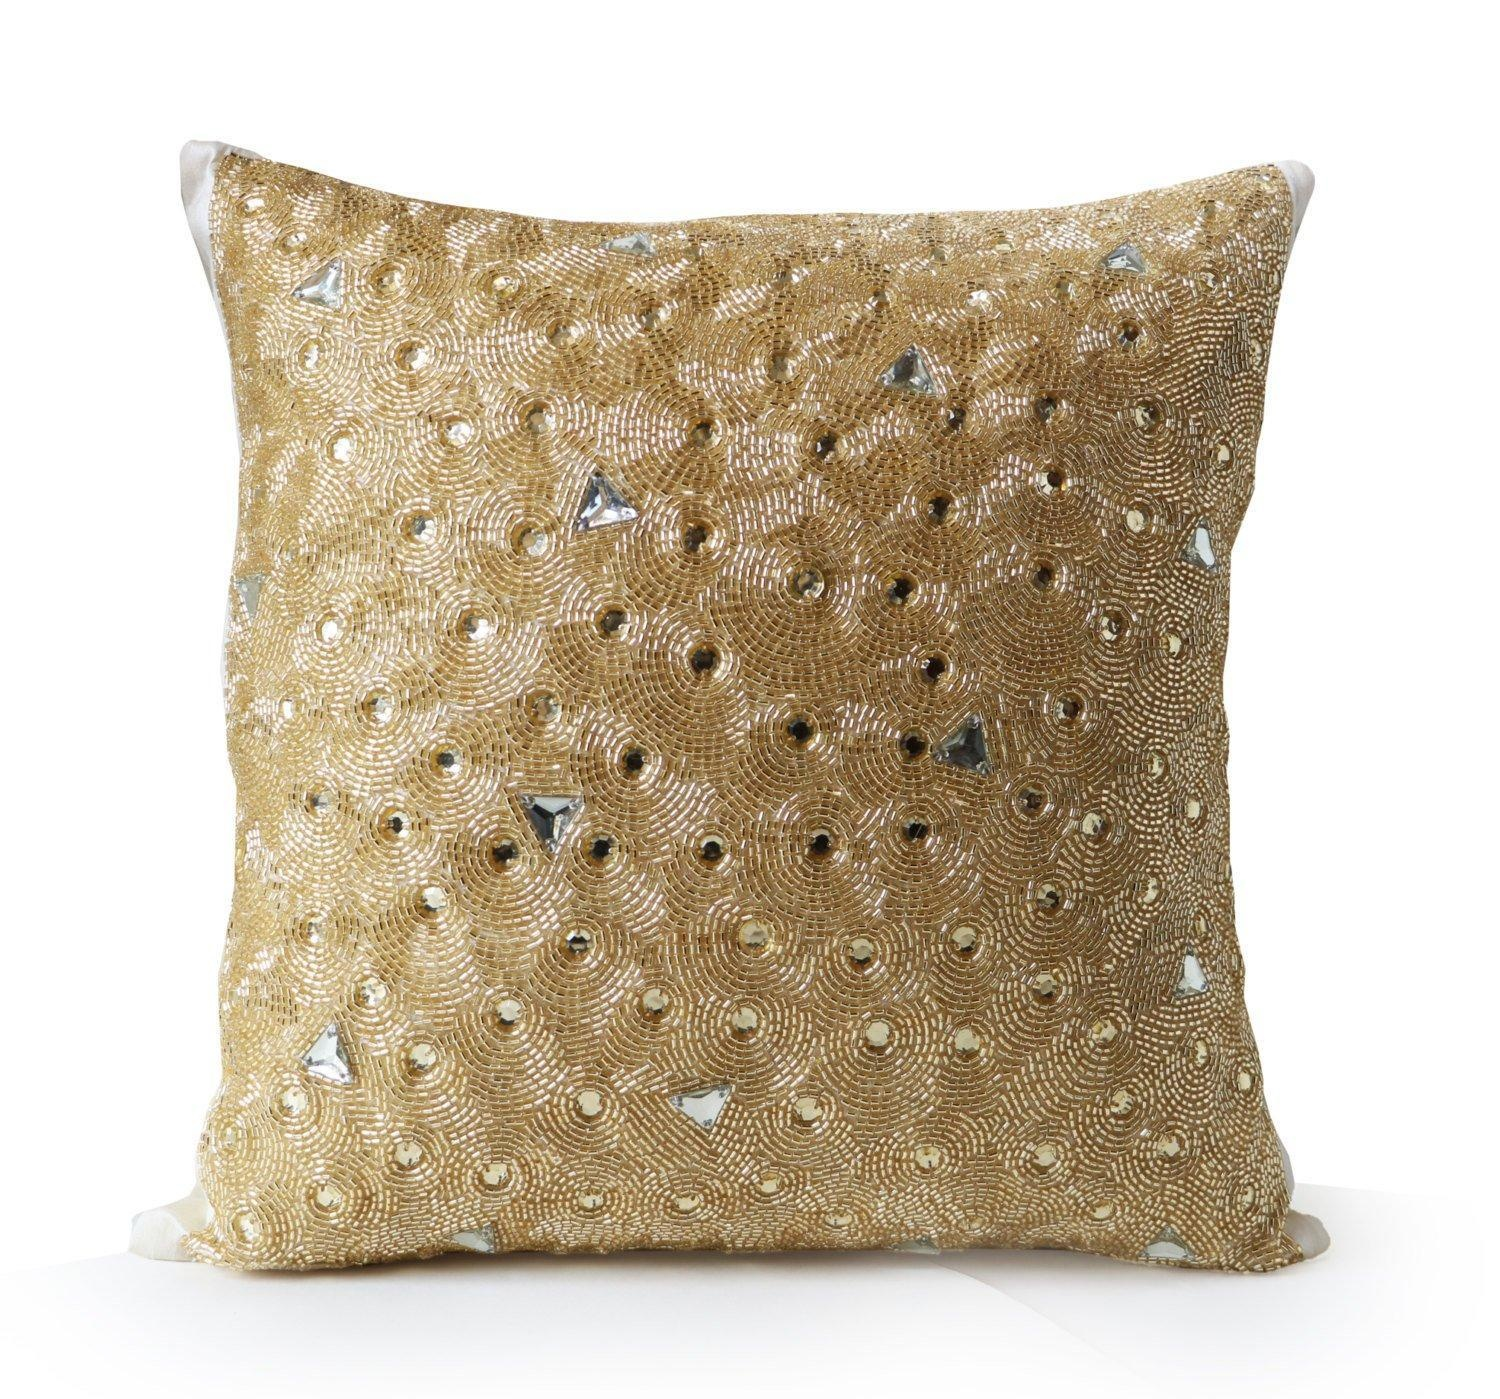 Bed pillows decorative - Decorative Pillows For Bed Gold Throw Pillows Target Pillows